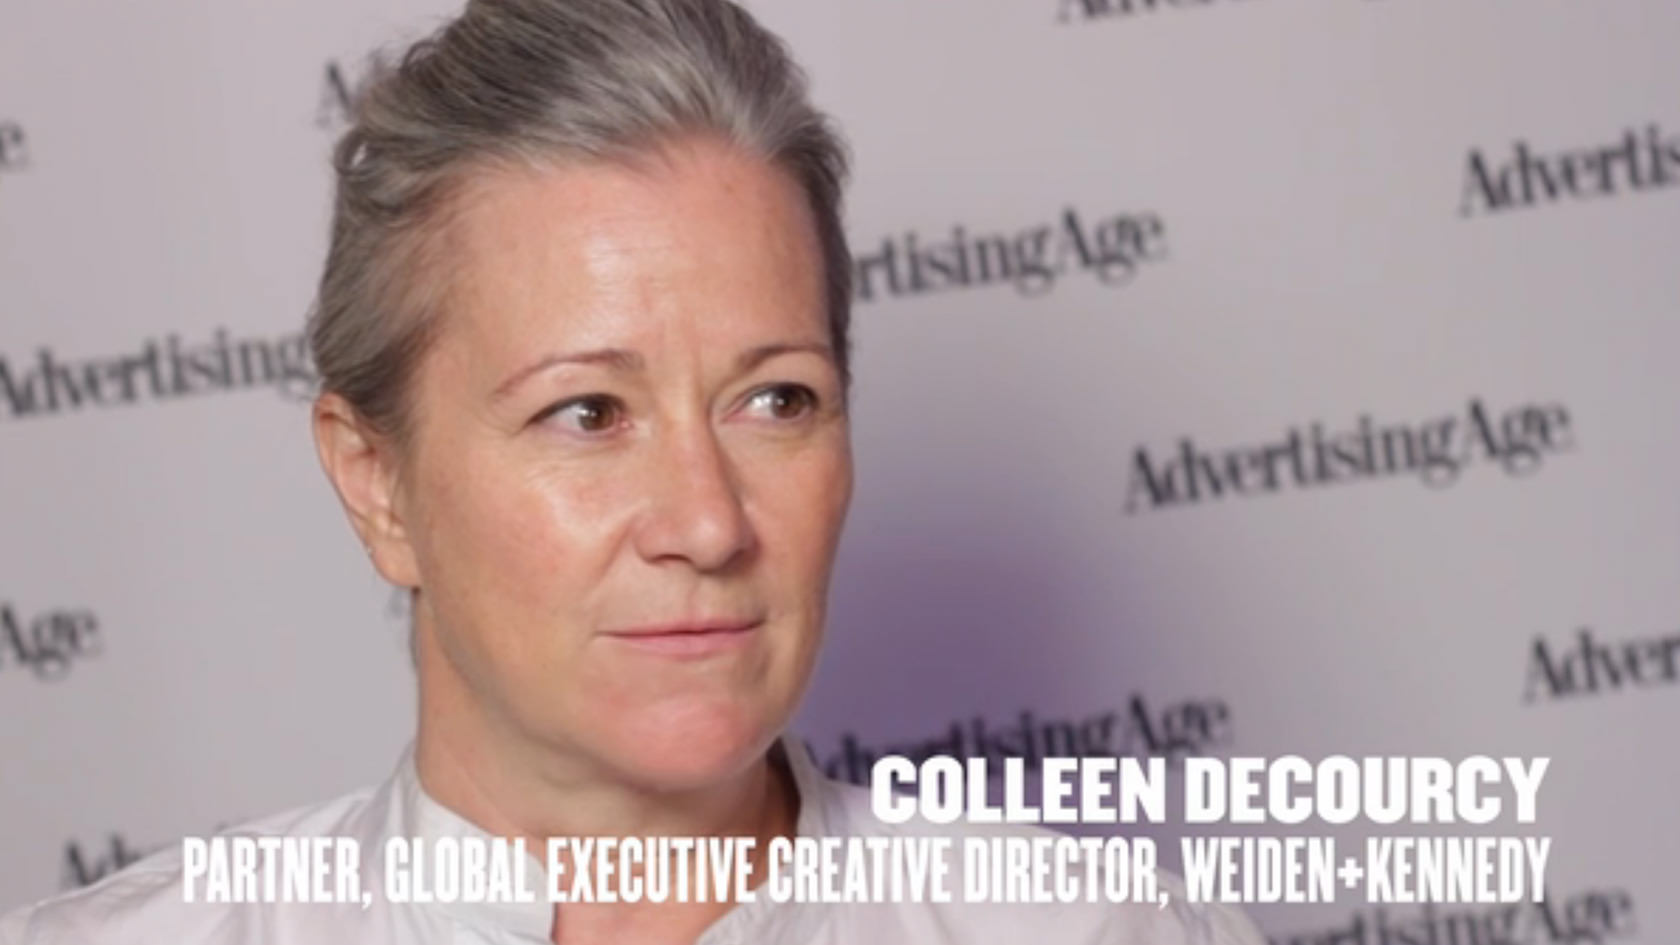 AdAge: Colleen DeCourcy, ECD Global da W+K, fala sobre ser uma agência independente